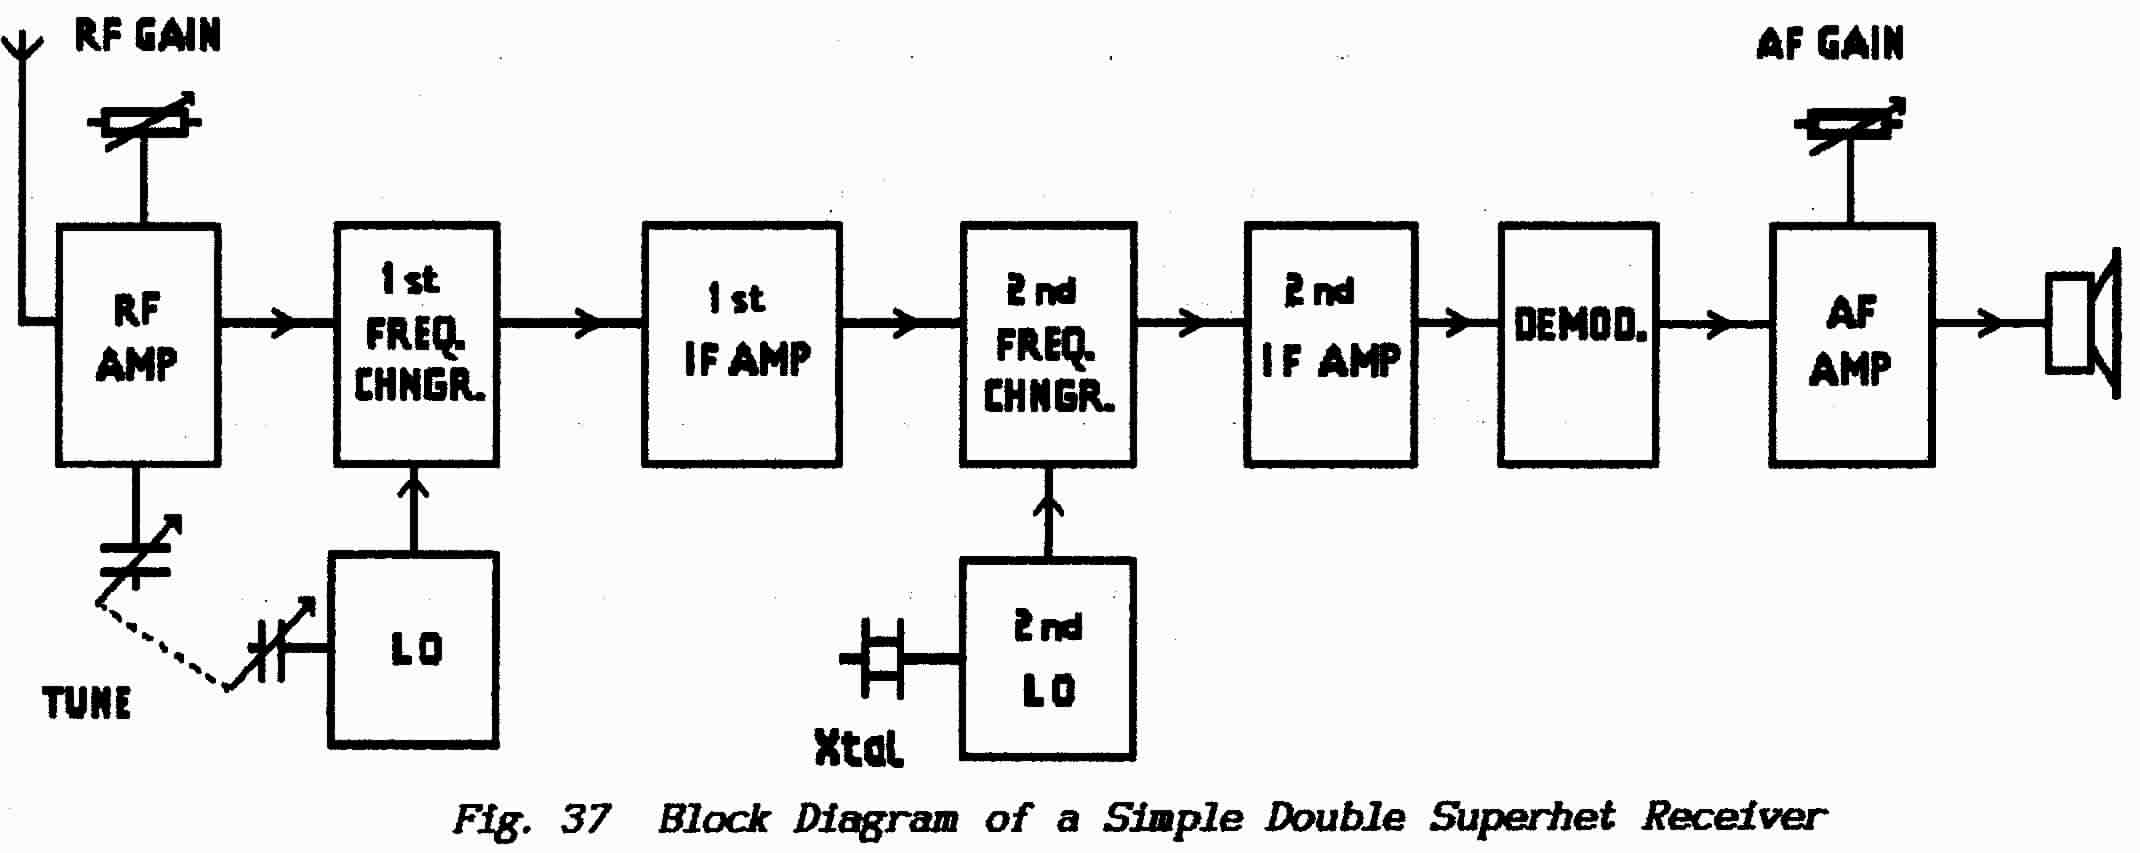 Radio Receiver Architectures Part 1trf And Superhet Faq Simple Fm Demodulator Circuit Diagram Electronic Diagrams Two Corresponding Independent Local Oscillators But Only The First Higher Frequency One Needs To Be Tunable Second Is At A Fixed